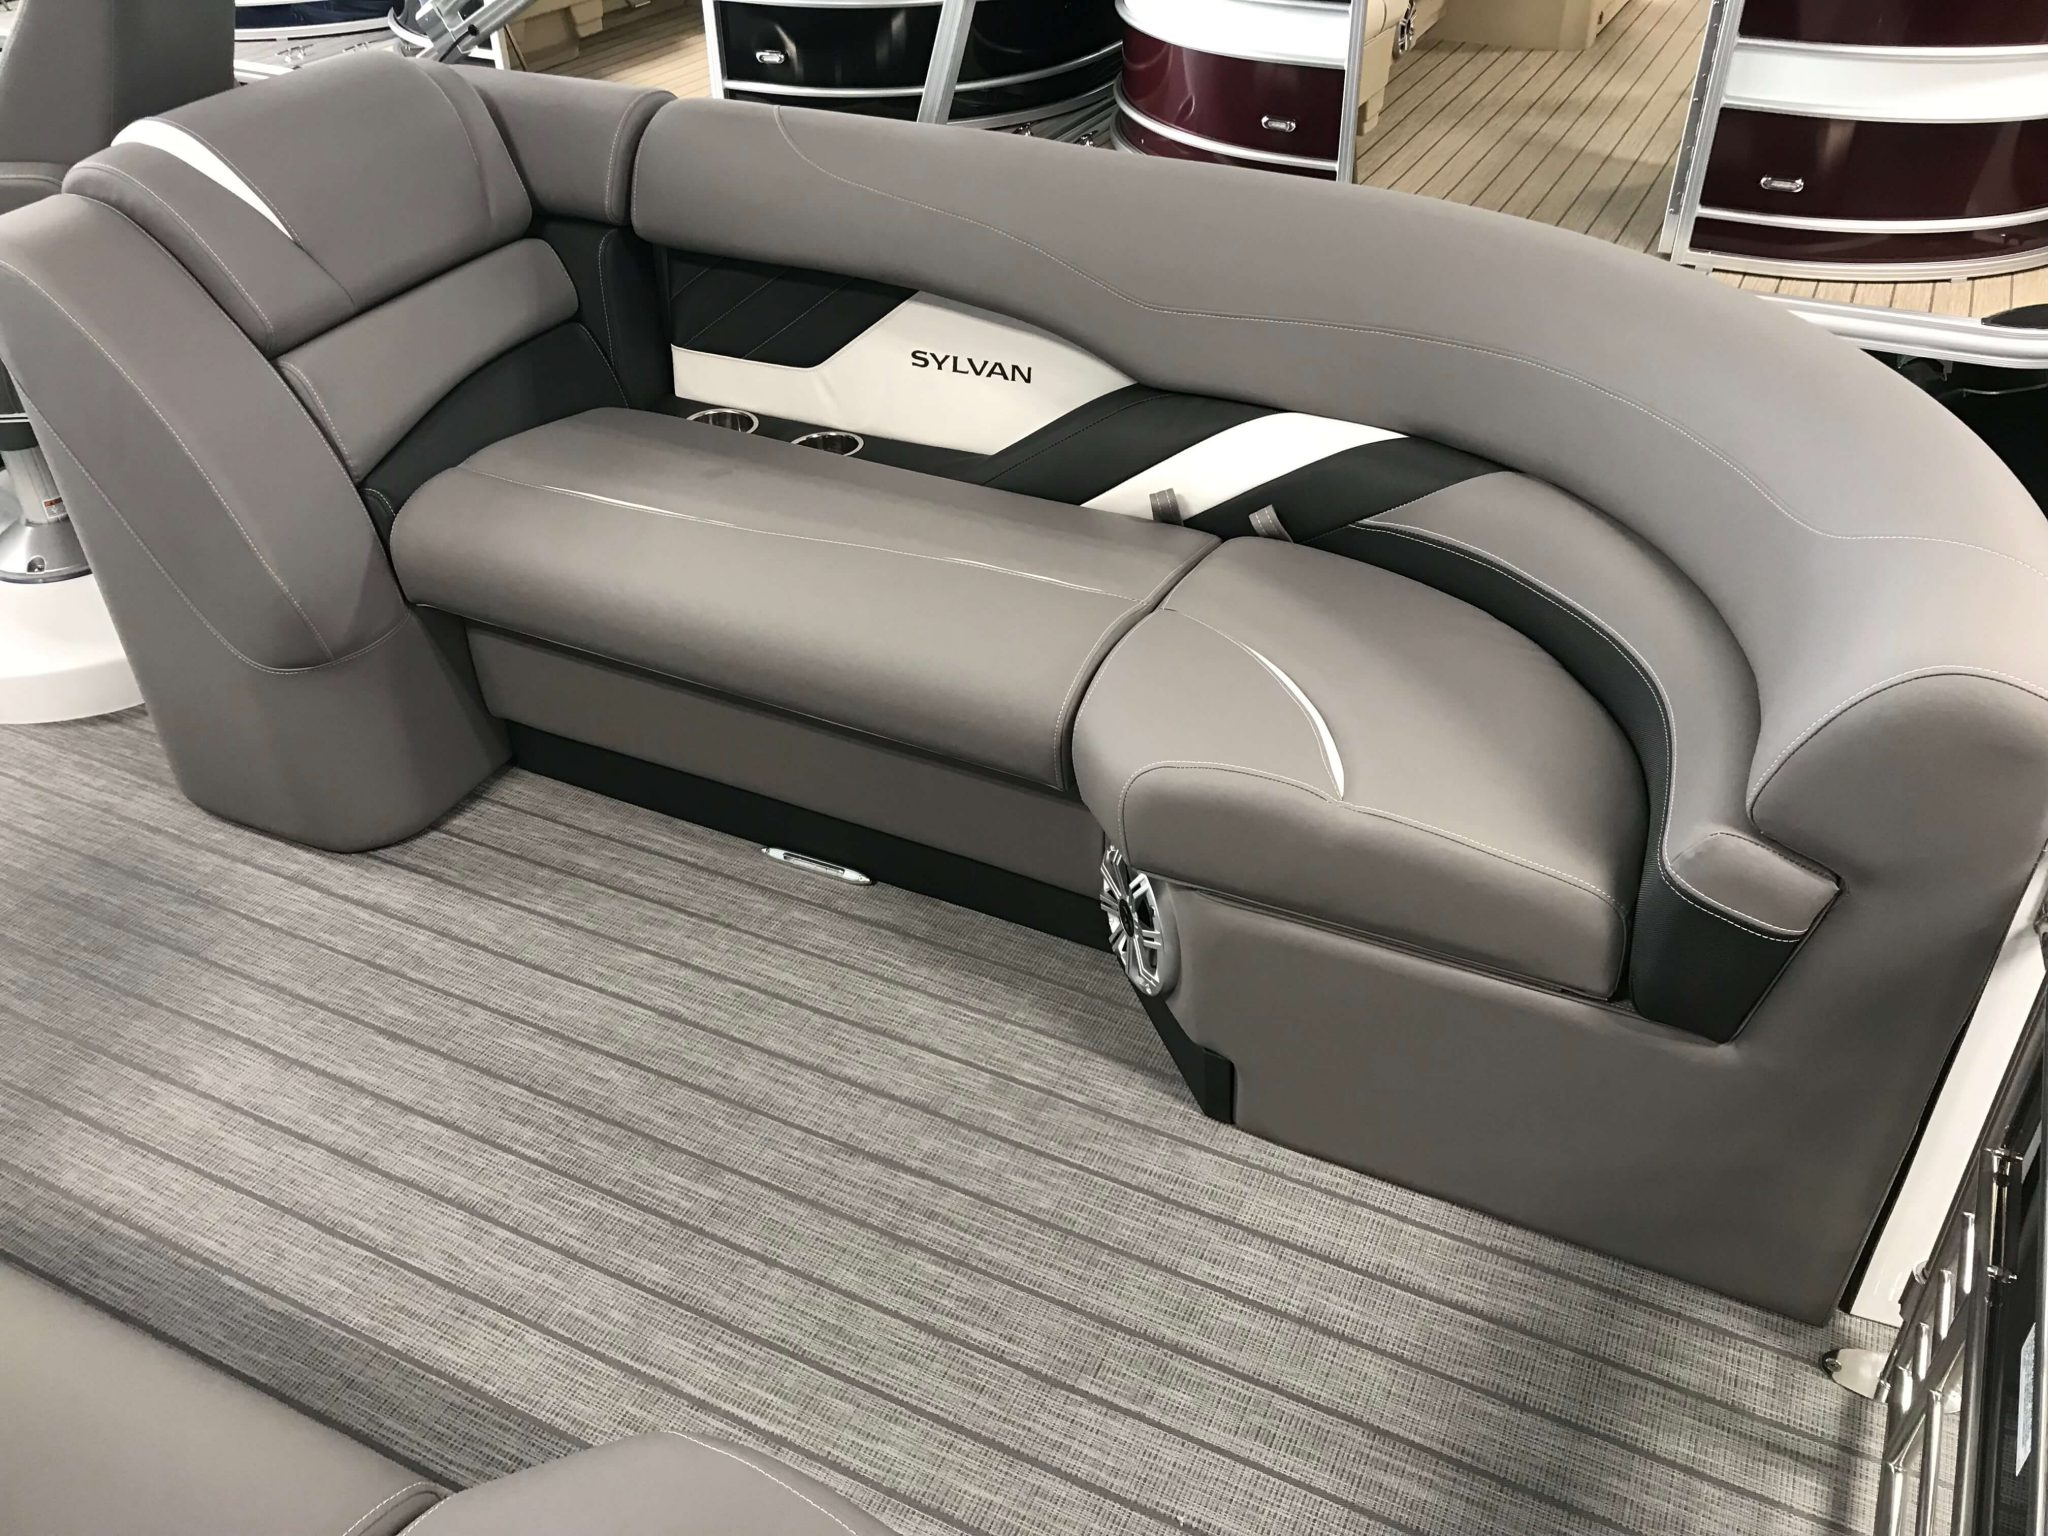 2019 Sylvan S3 LZ Tritoon Interior Seating 2